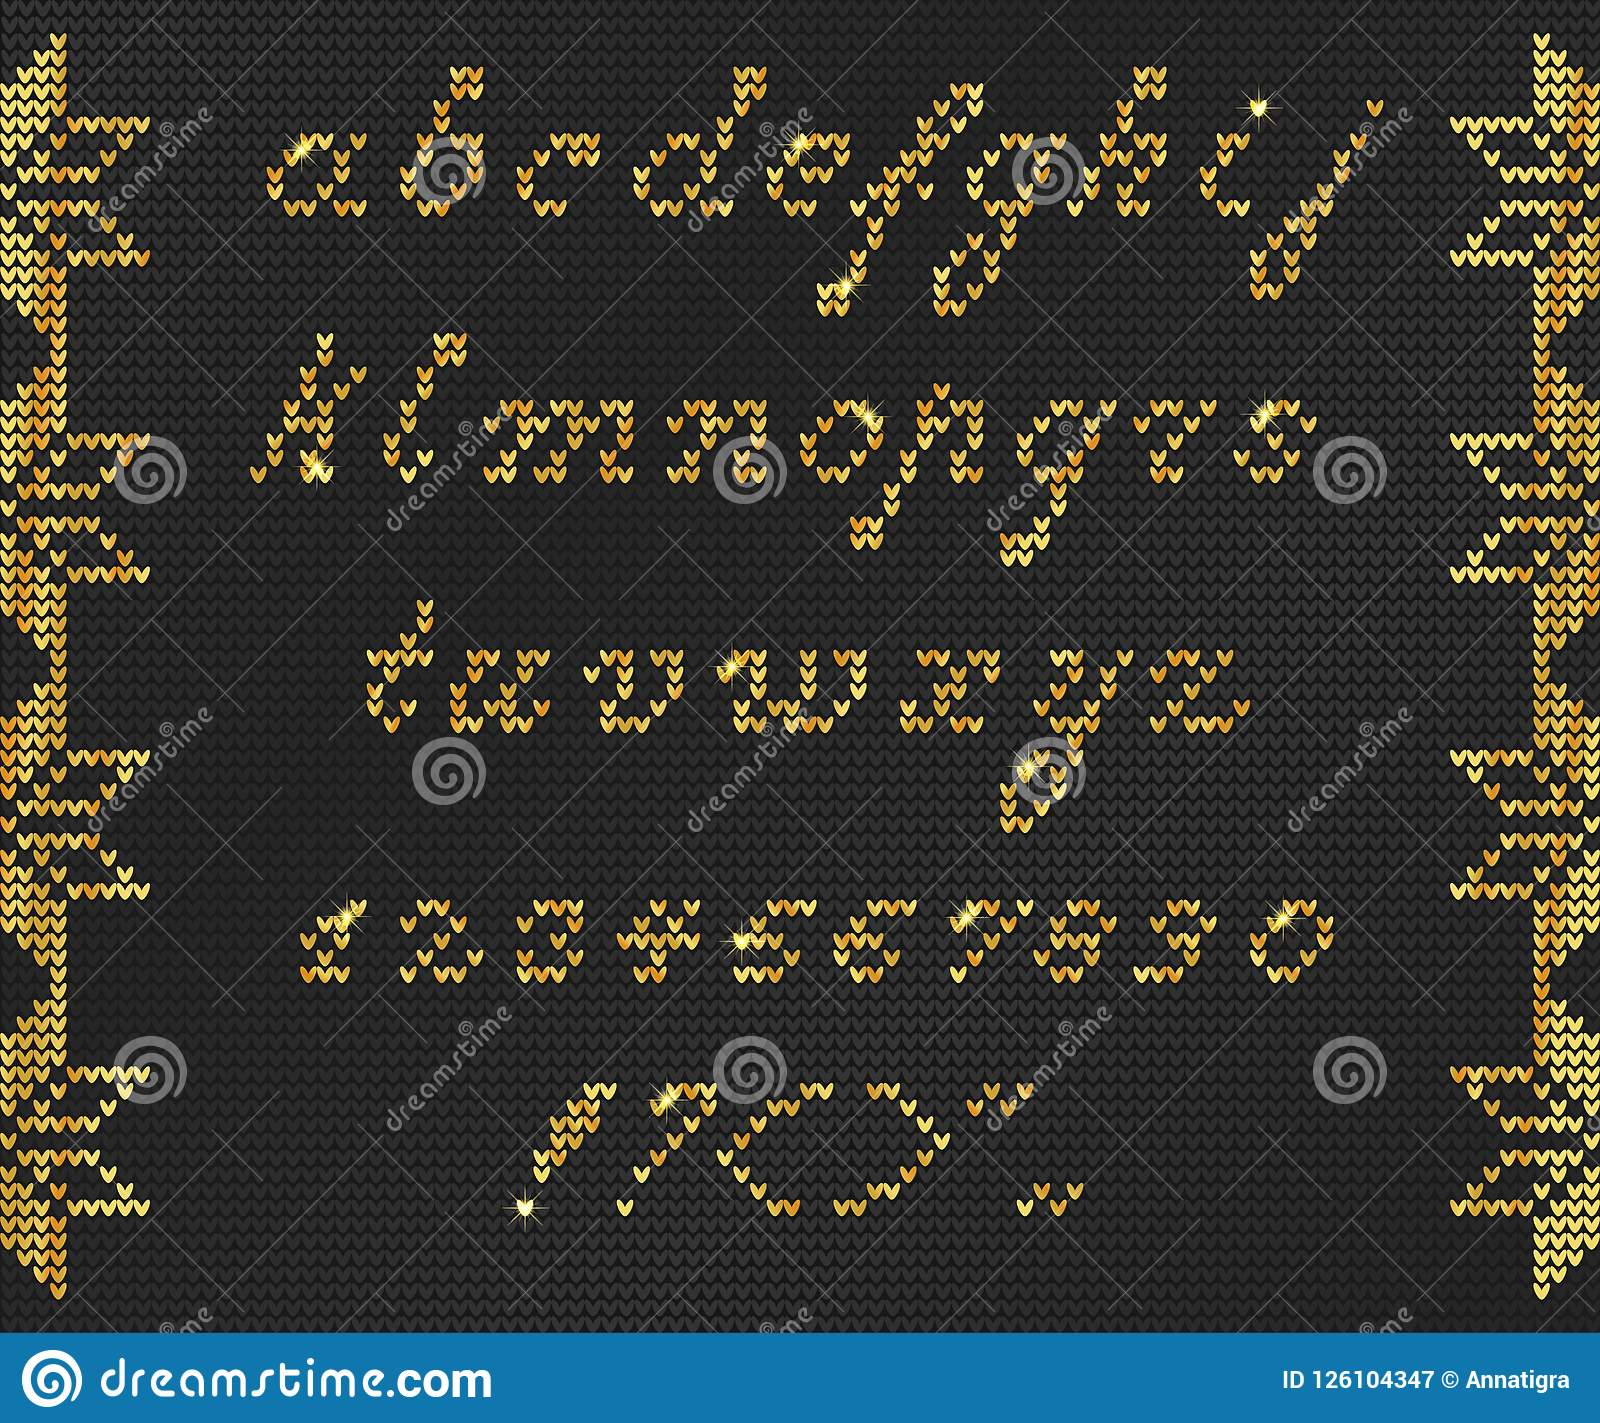 56ff63822866 Christmas Knitted Font 1 stock vector. Illustration of gold - 126104347